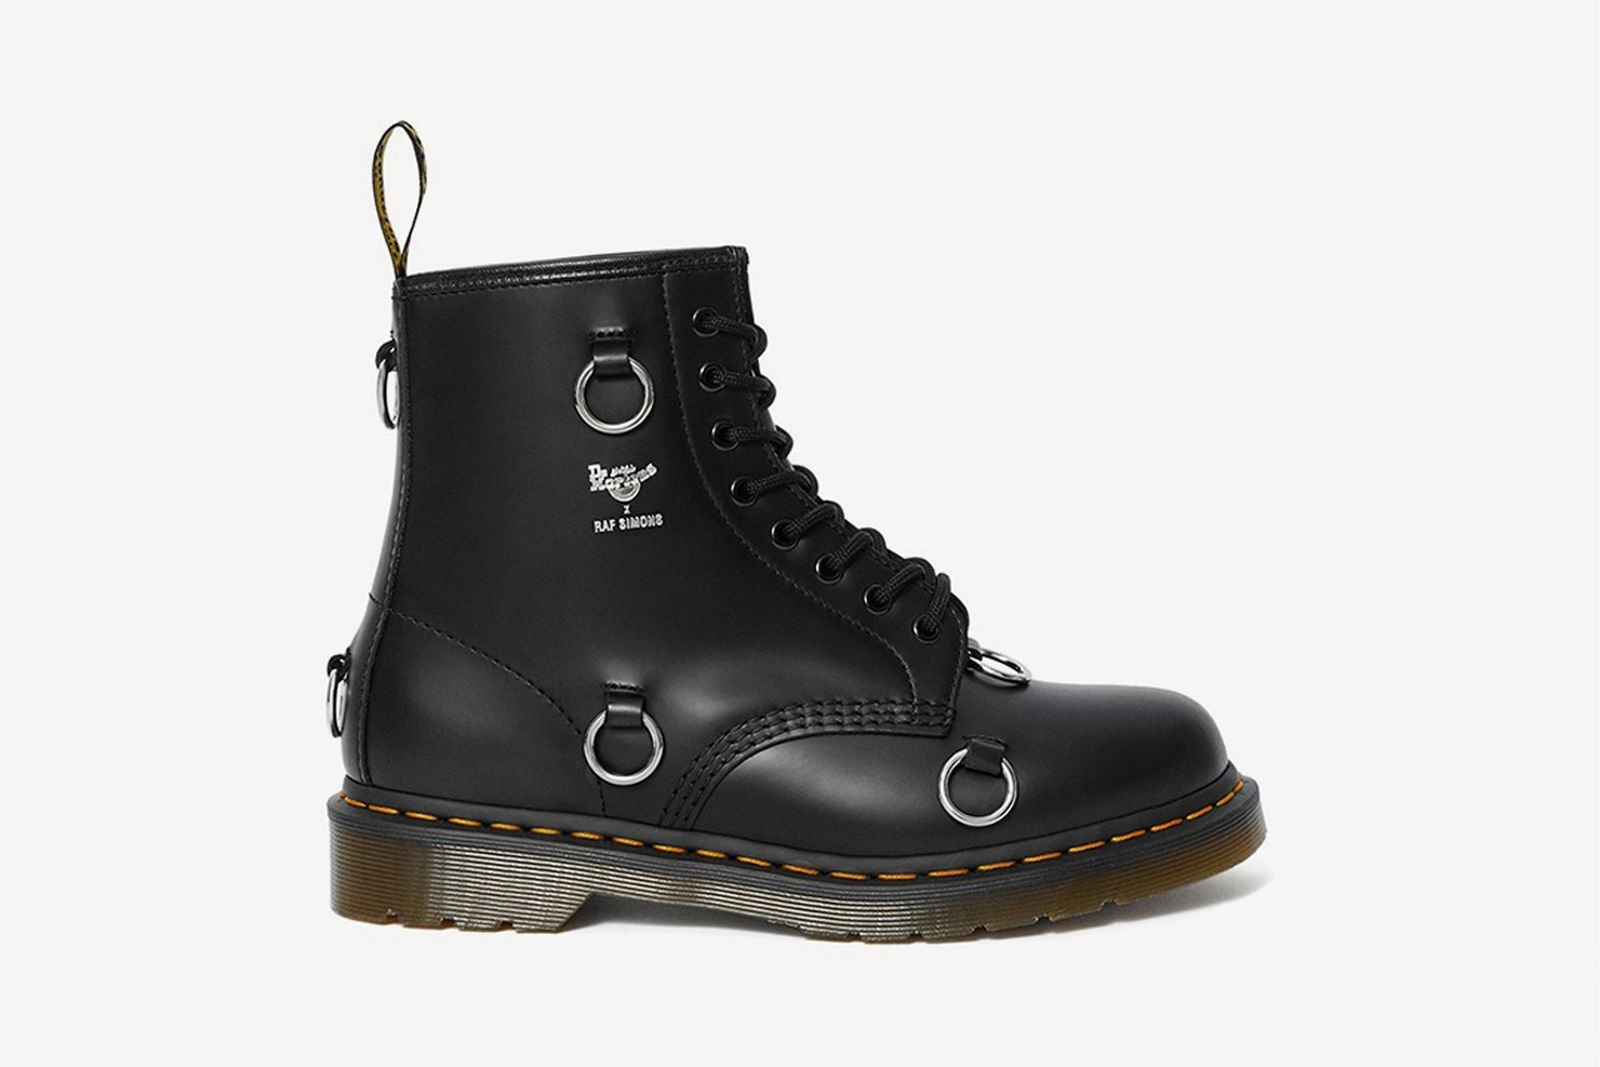 raf-simons-dr-martens-1460-release-date-price-03